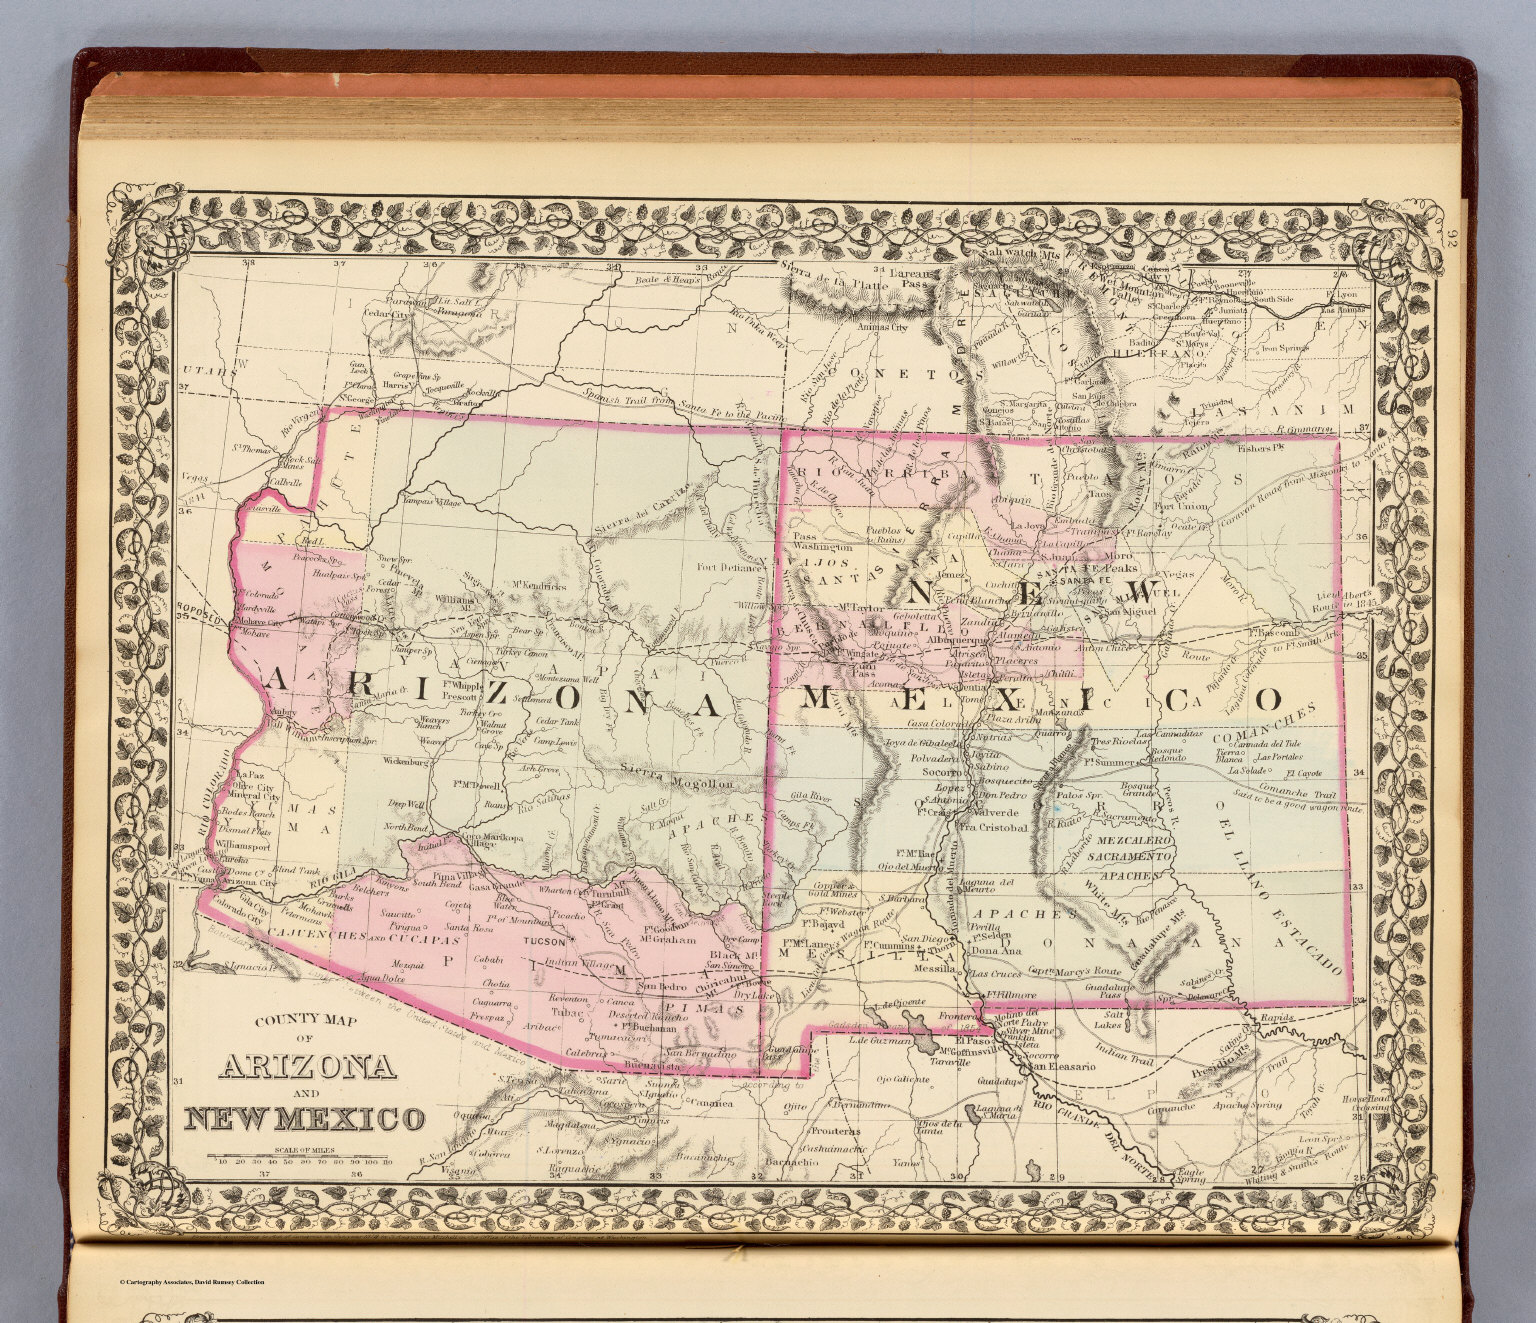 County map of Arizona and New Mexico. Entered ... 1879 by S ... on